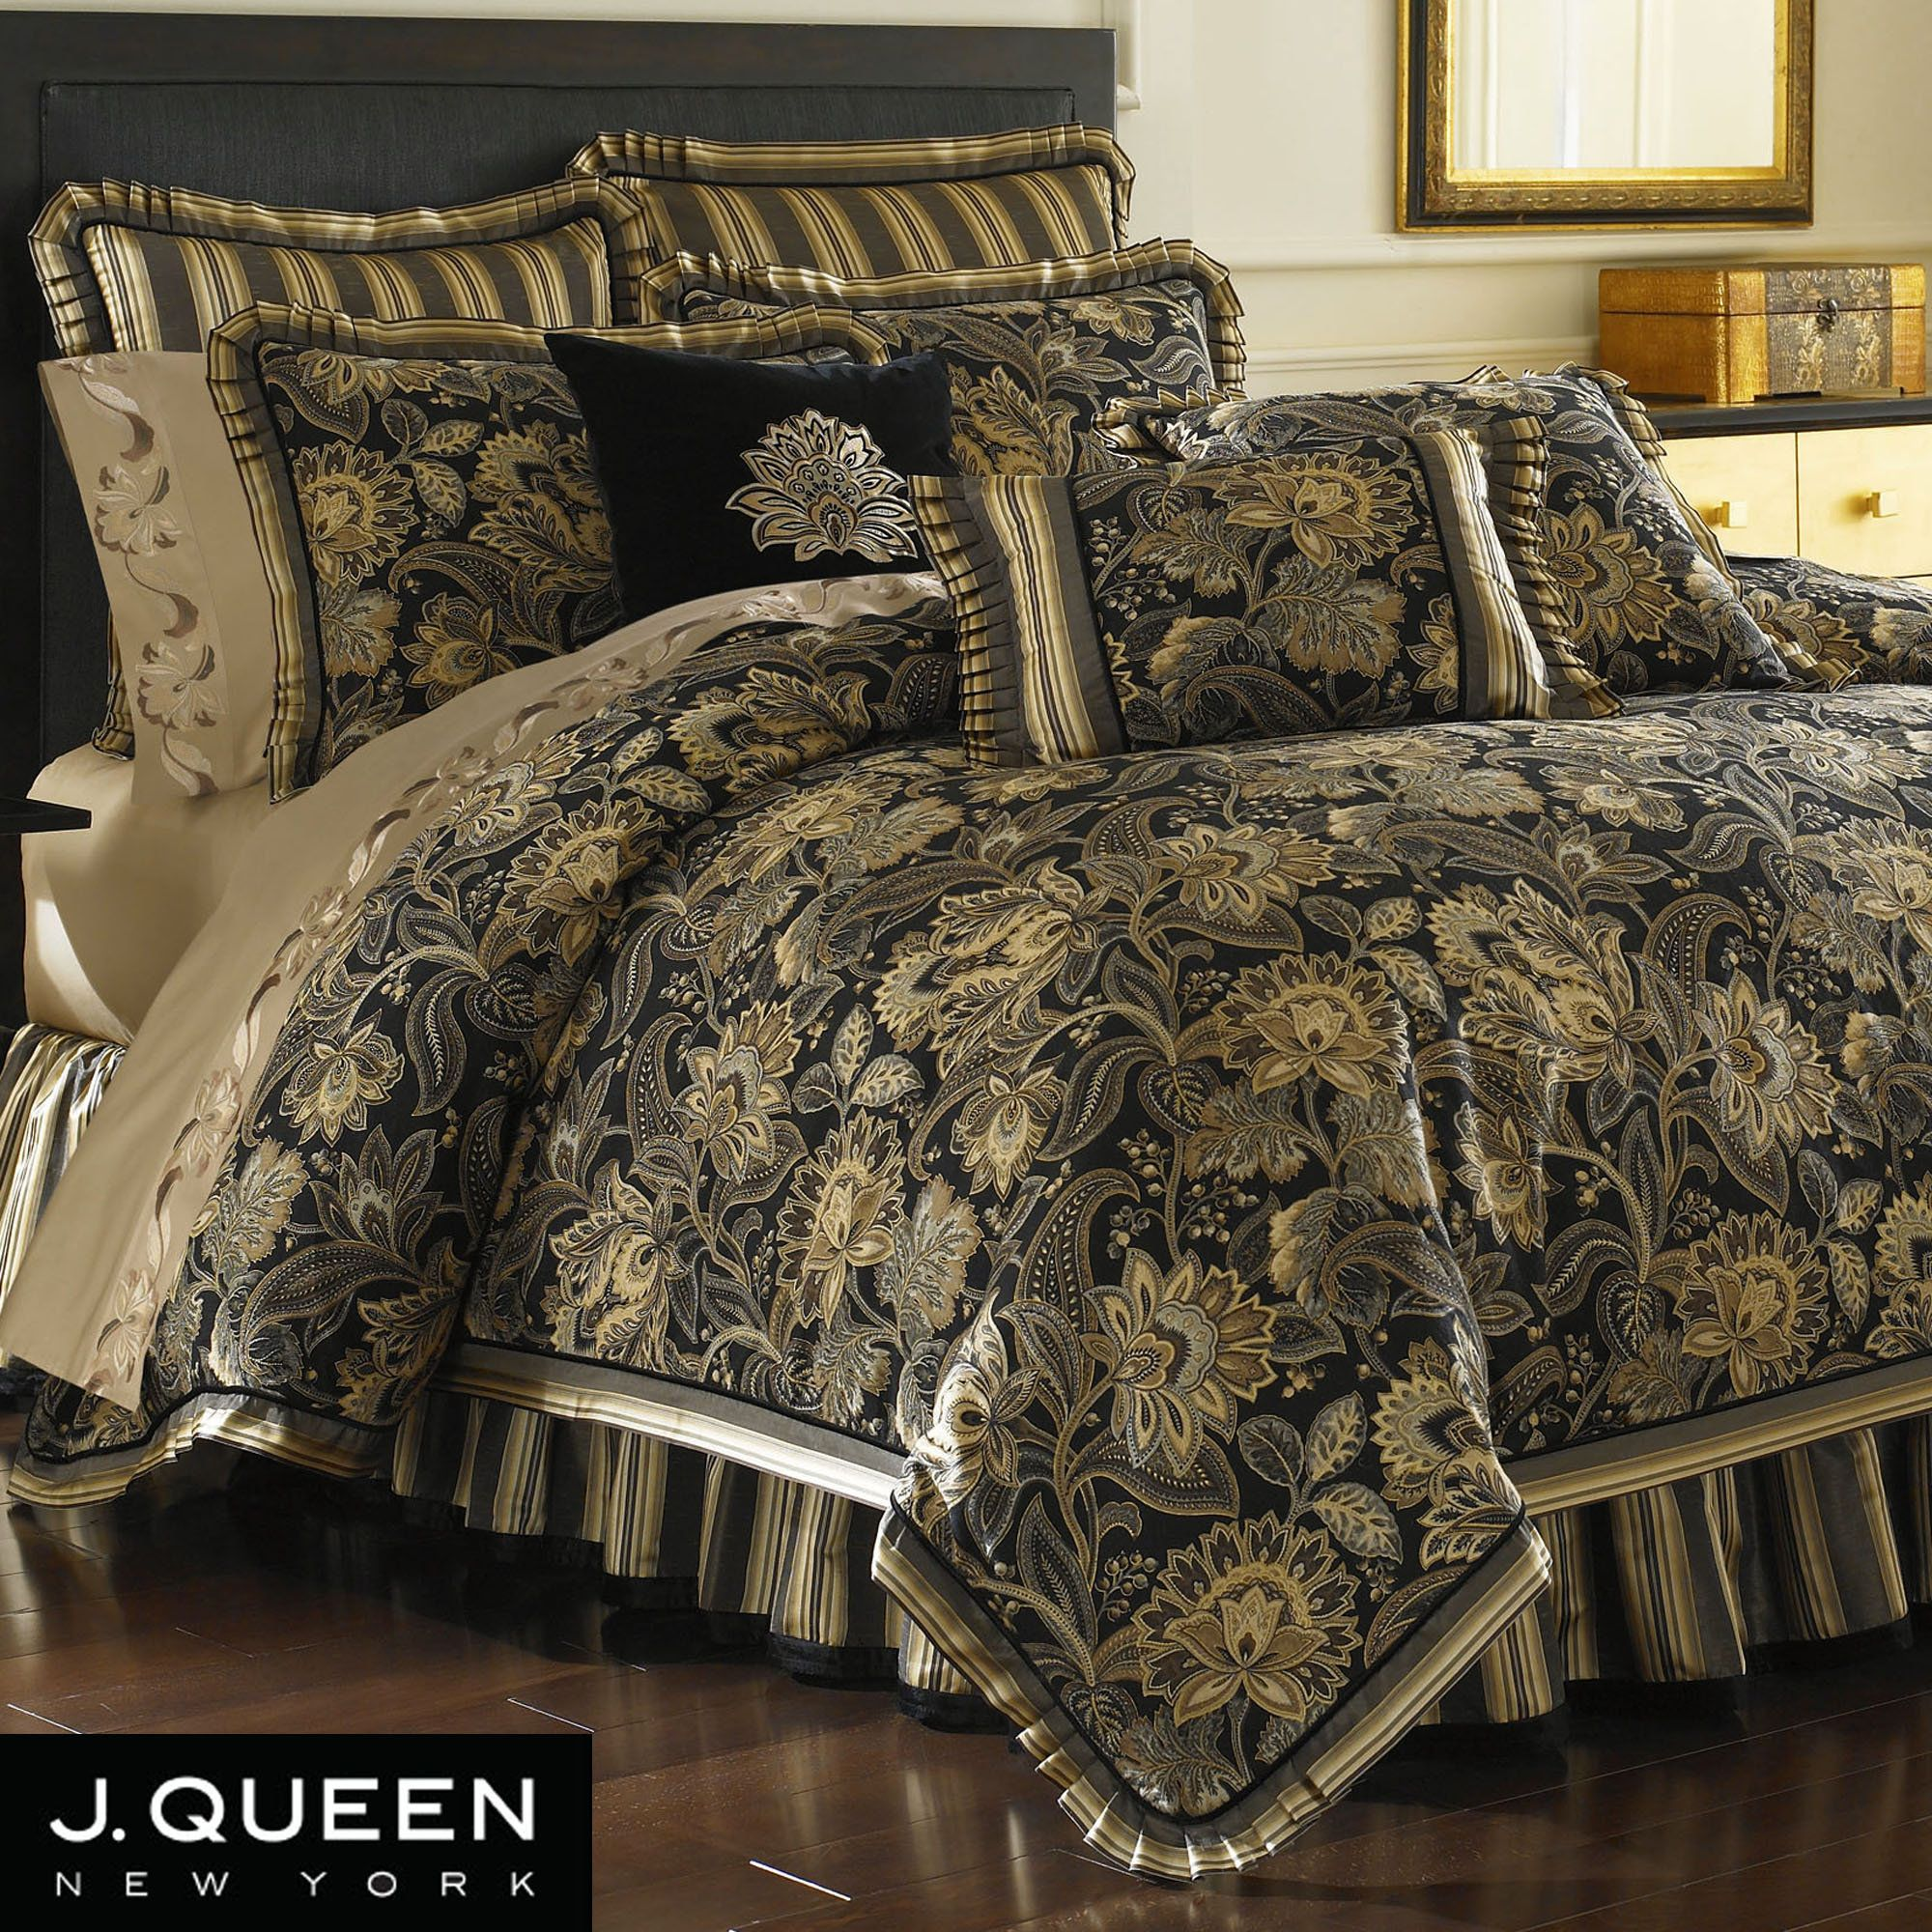 Queen new york luxembourg comforter set in antique silver bed - Queen New York Alicante Comforter Set Bed Bath Beyond